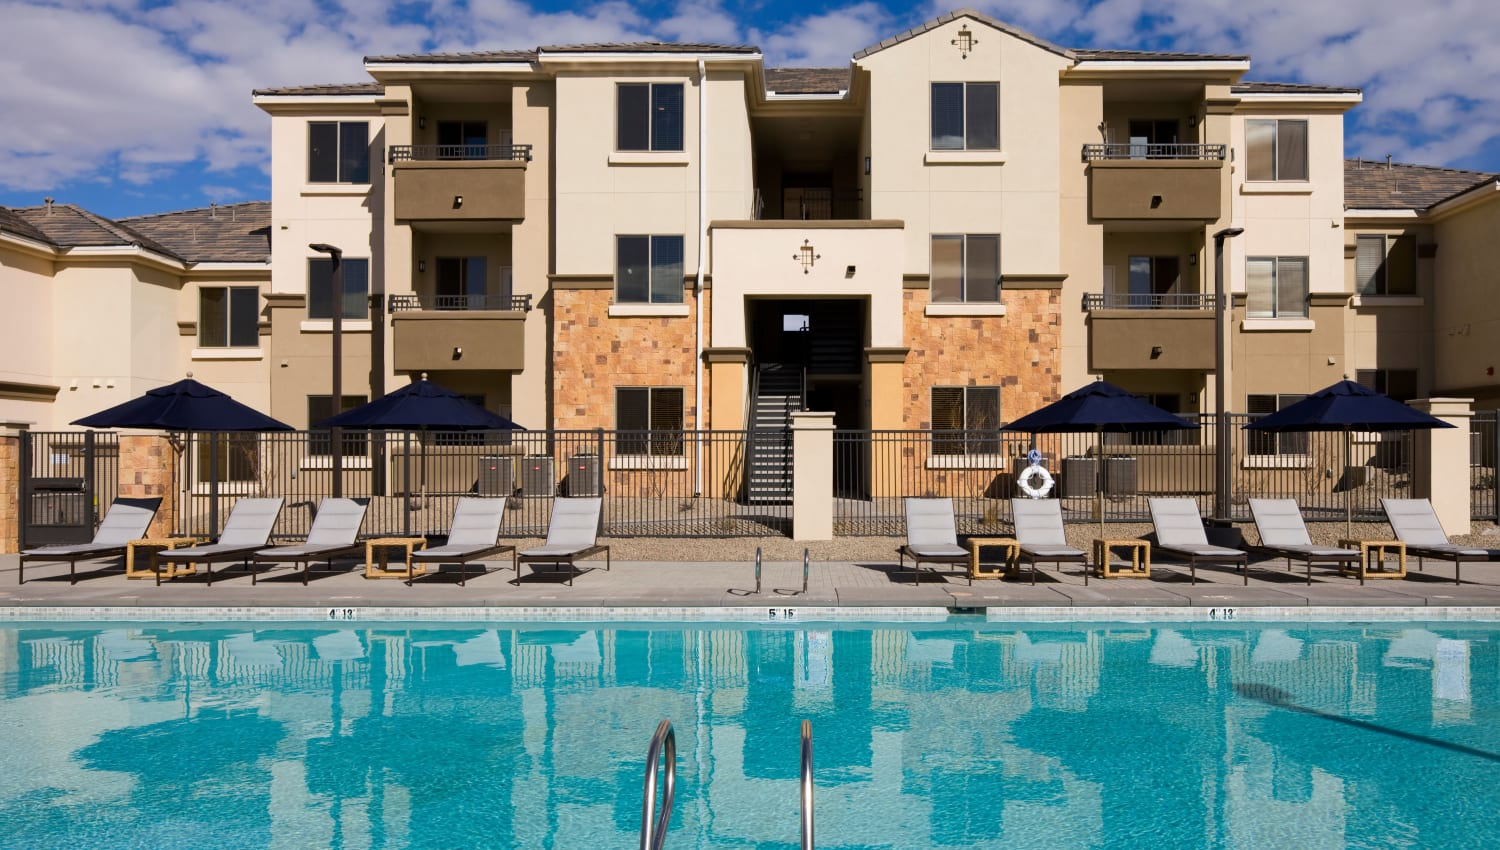 Exterior view of our luxury swimming pool at Olympus Alameda in Albuquerque, New Mexico